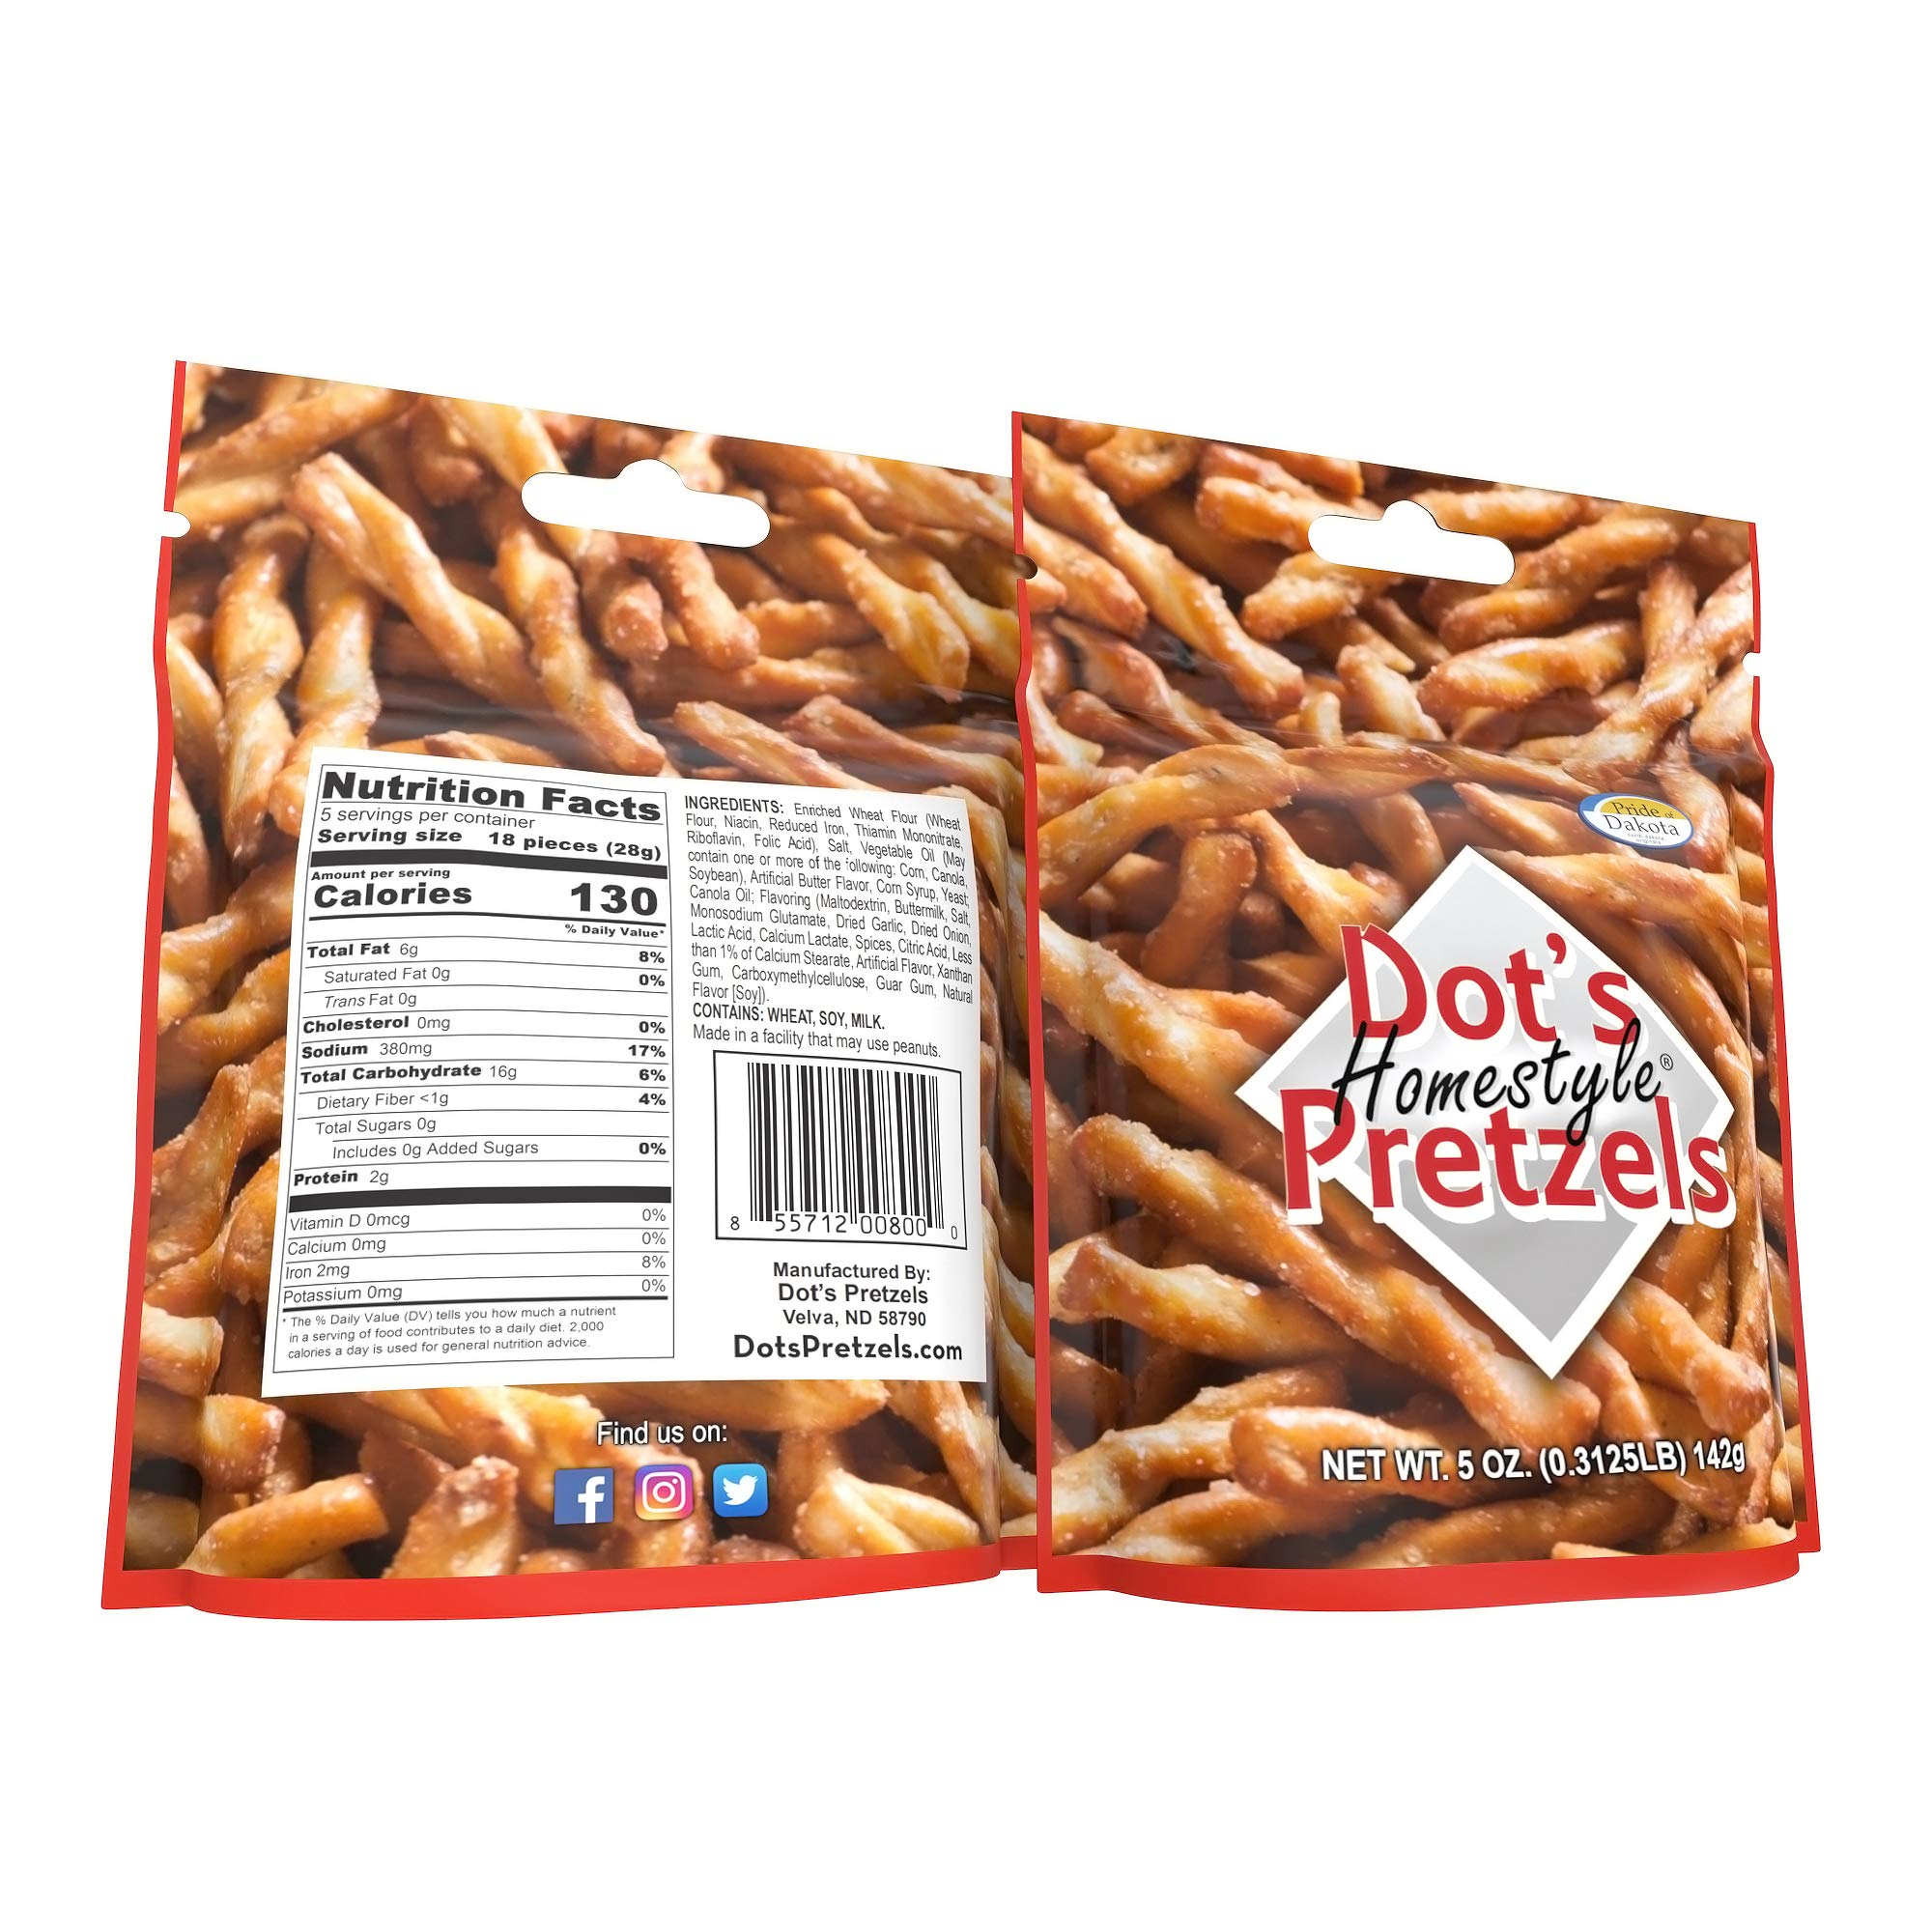 Dot's Homestyle Pretzels 5 oz. Bags (5 Pack) Snack Sized Seasoned Pretzel Snack Sticks by Dot's Homestyle Pretzels (Image #7)